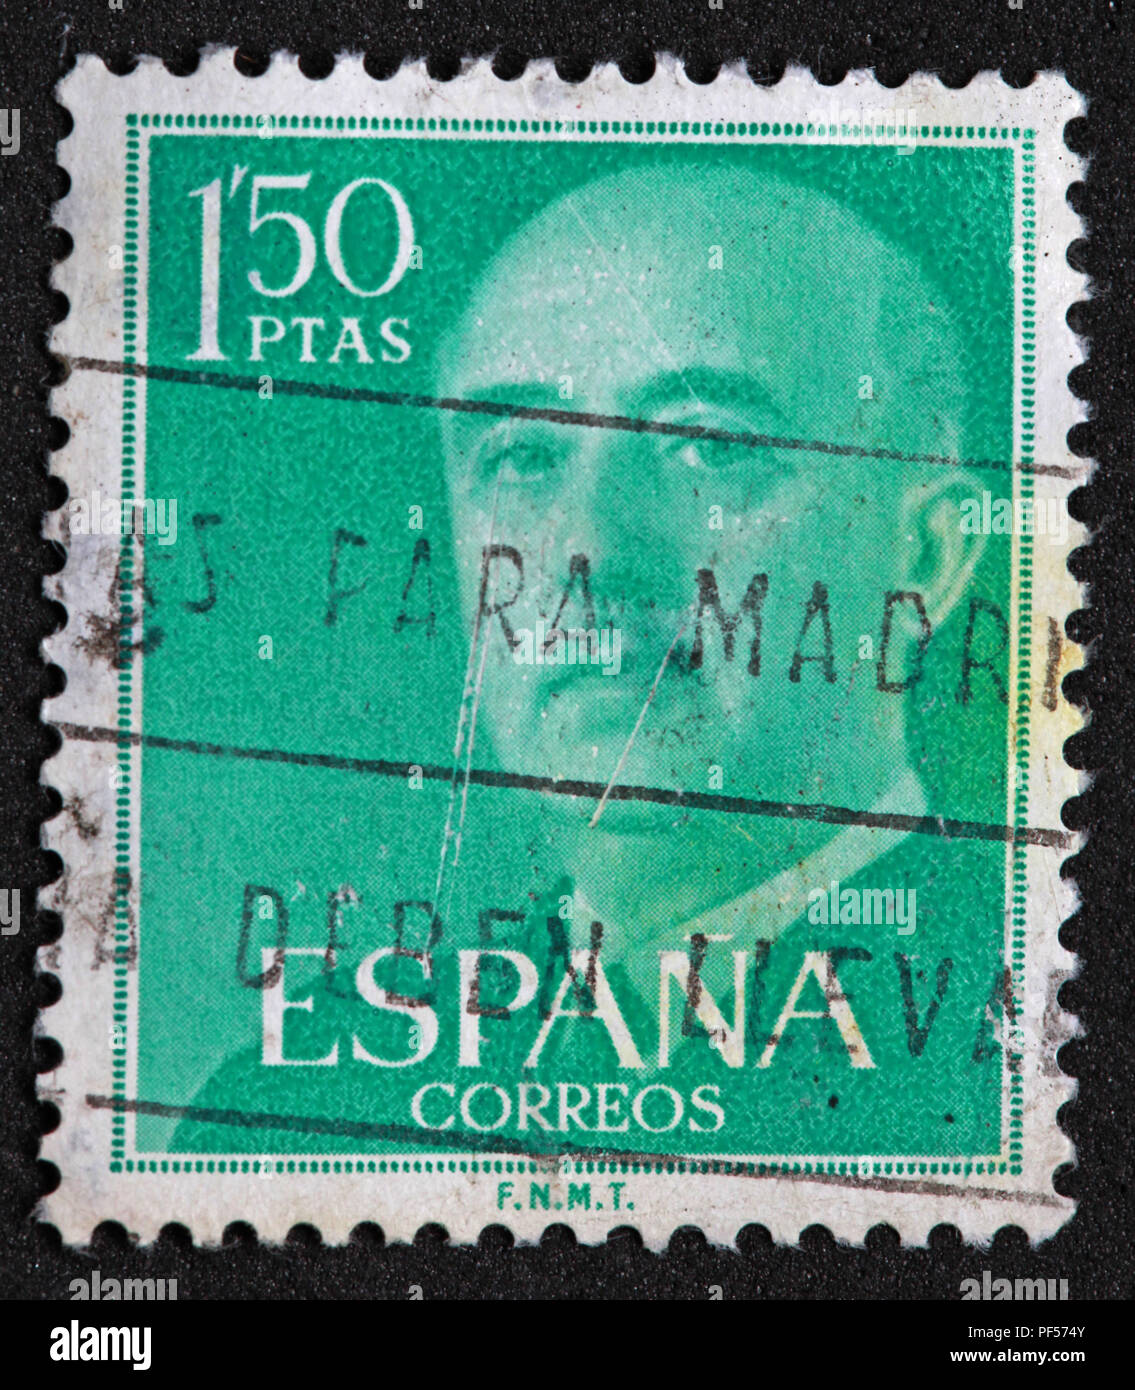 Gotonysmith,@Hotpixuk,Hotpixuk,rare old stamps,used stamps,Postal,letters,letter,communication,print,analogue,historic stamps,Used 1.5ptas Peseta green stamp,Used,ptas,1.5,green,stamp,Spanish,Spanish stamps,Spanish stamp,Spanish green stamp